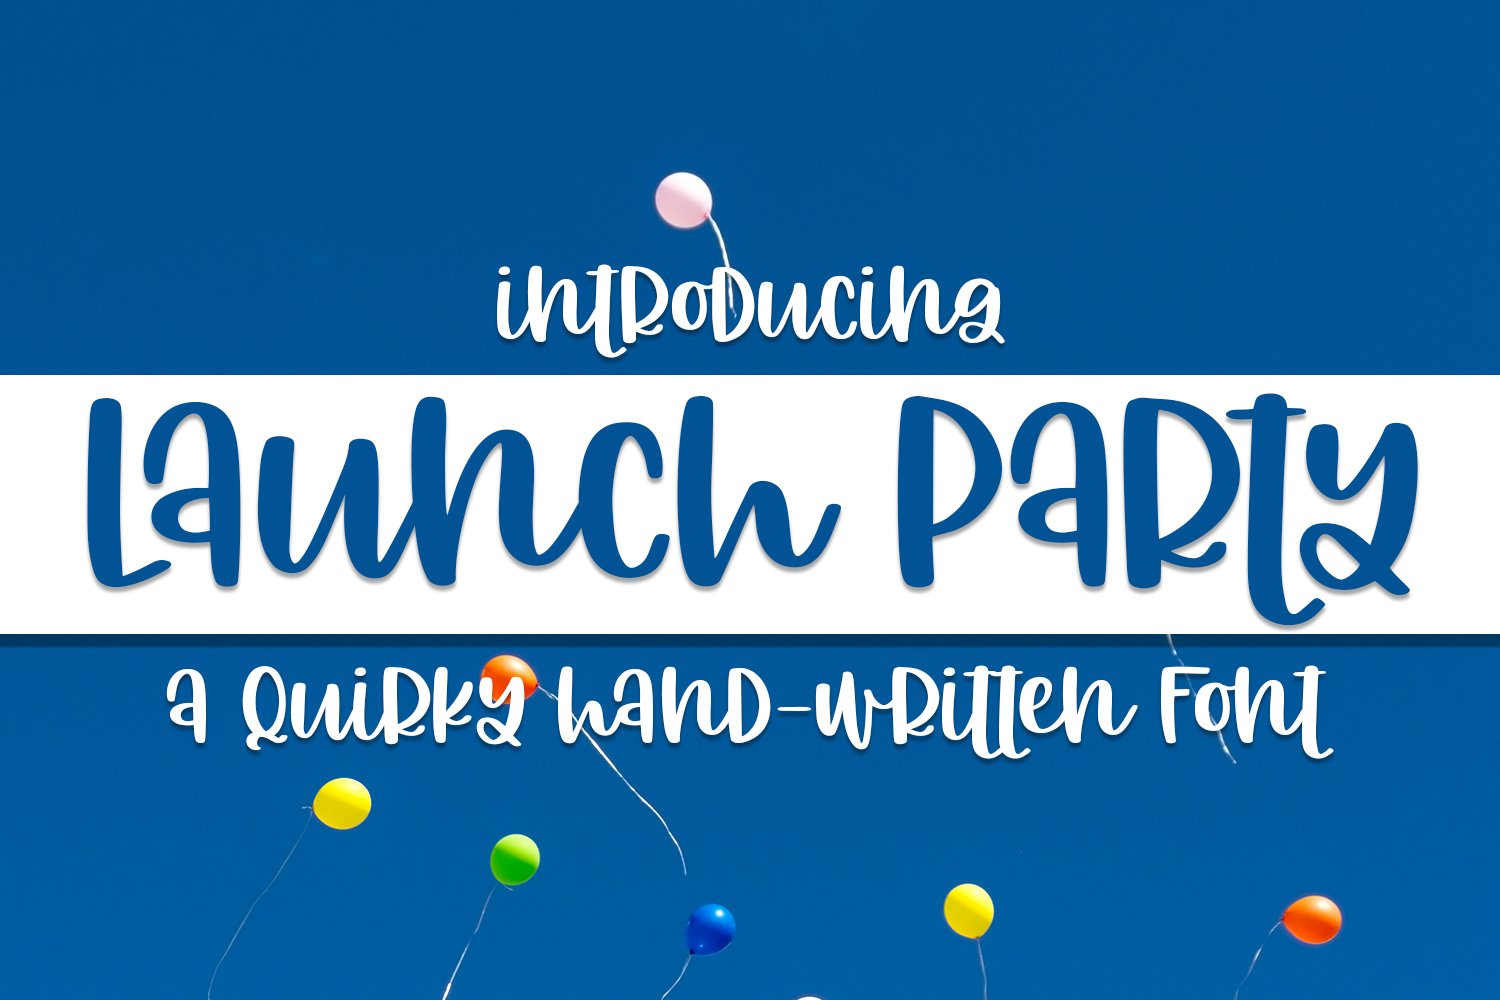 Launch Party - A Quirky Hand-Written Font example image 1